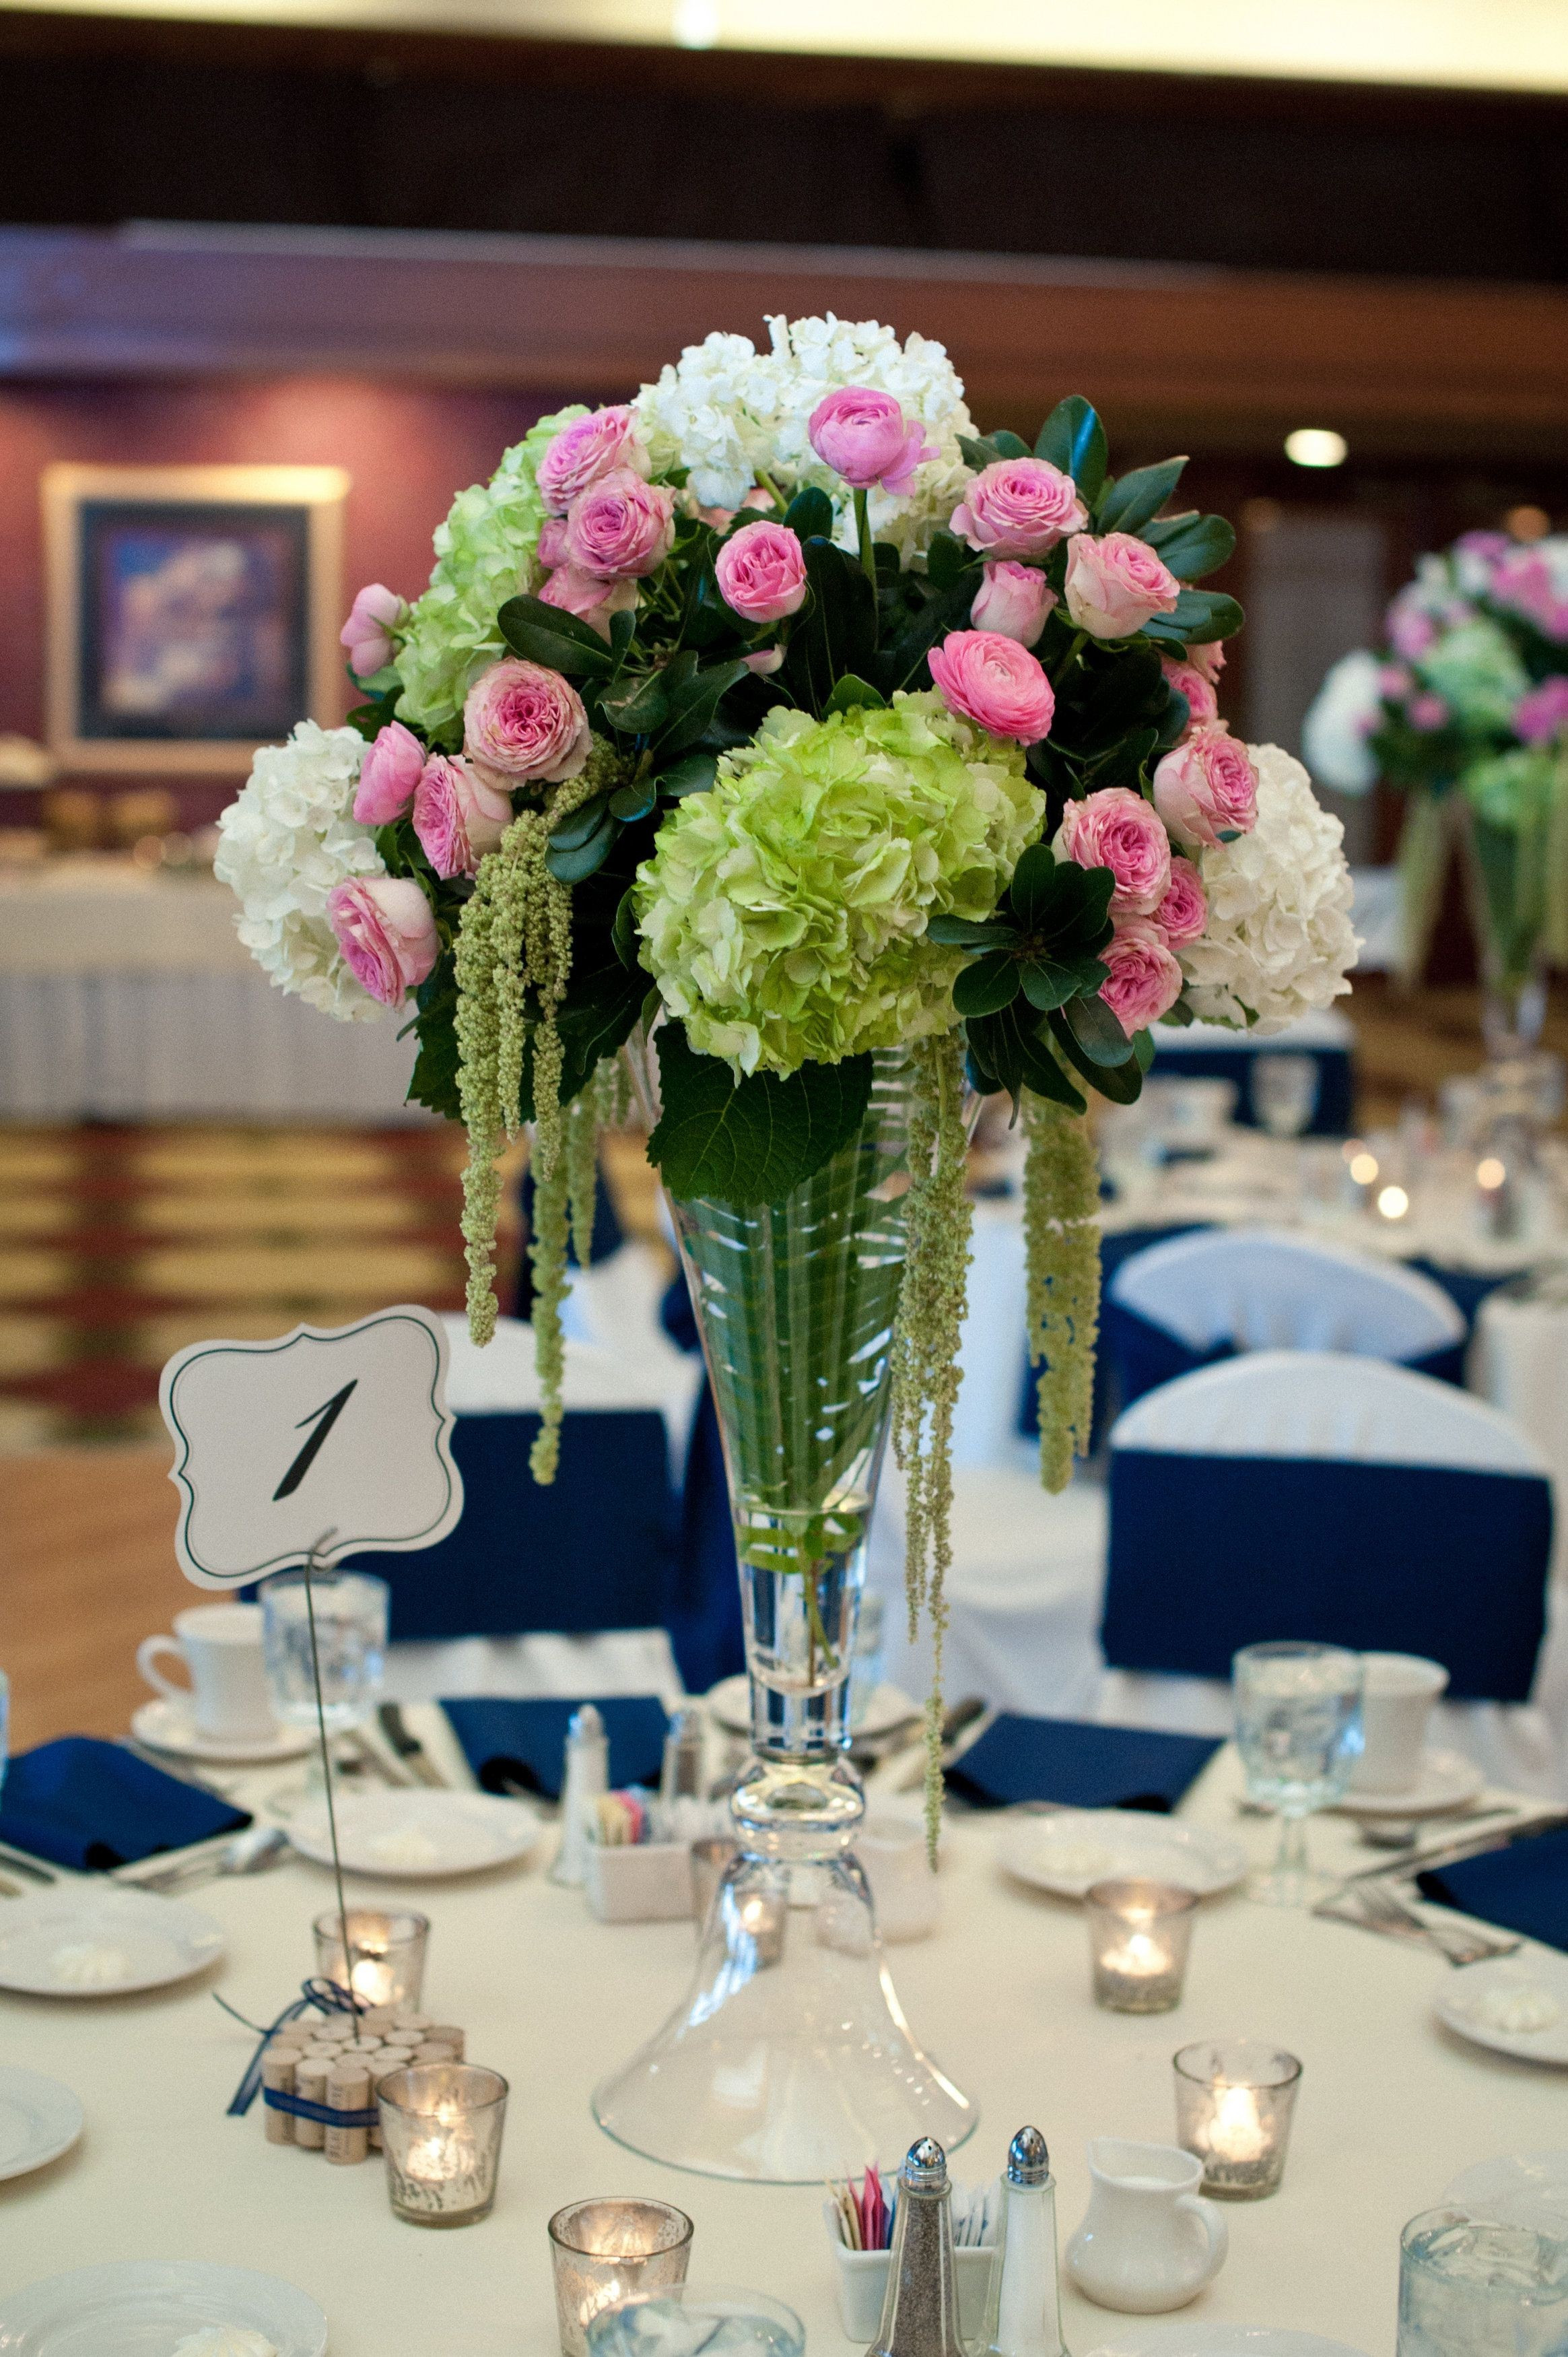 16 Ideal Vases In Bulk for Wedding 2021 free download vases in bulk for wedding of hydrangea decorations wedding unique cool wedding ideas as for h with regard to hydrangea decorations wedding elegant tall wedding centerpieces green hydrangea p